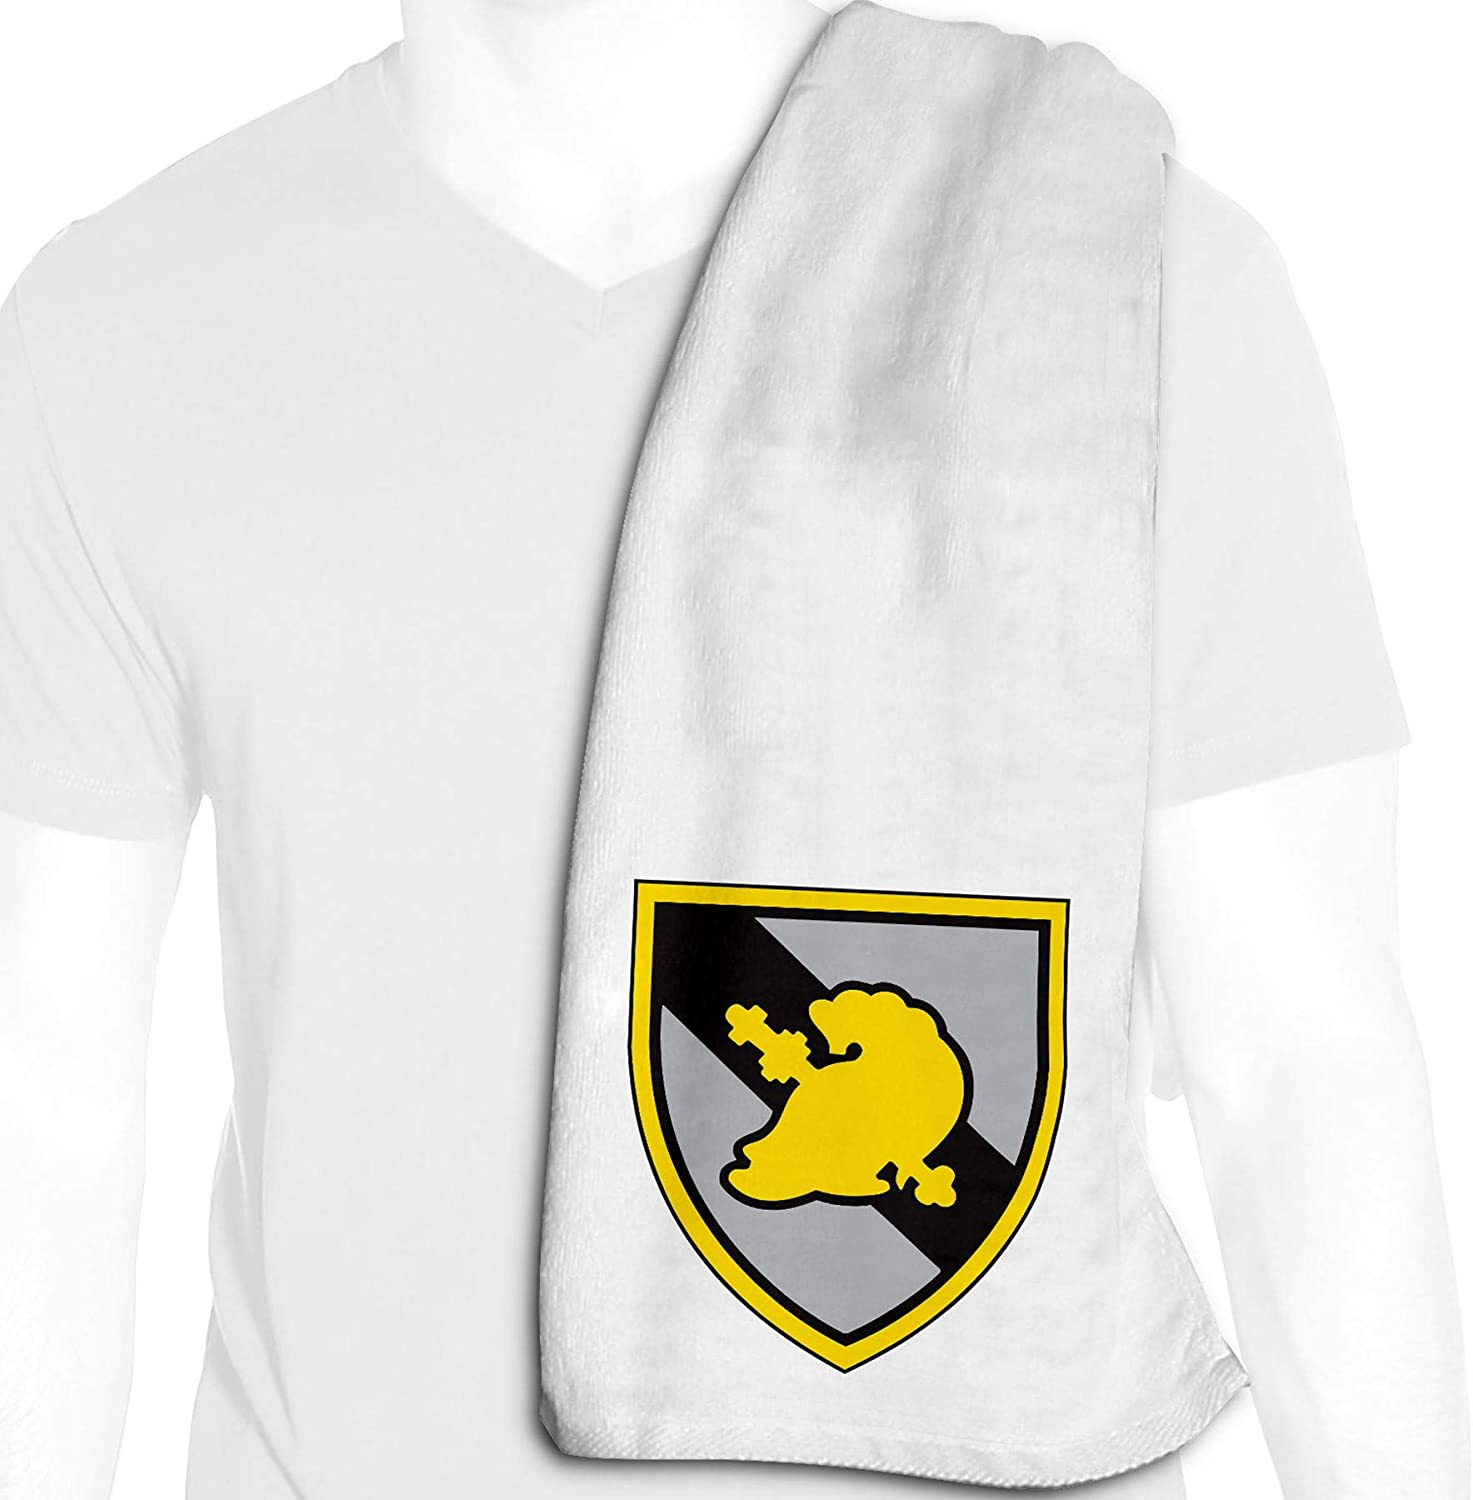 ExpressItBest Microfiber Cooling Towel - 12in x 36in - US Military Academies - Many Options